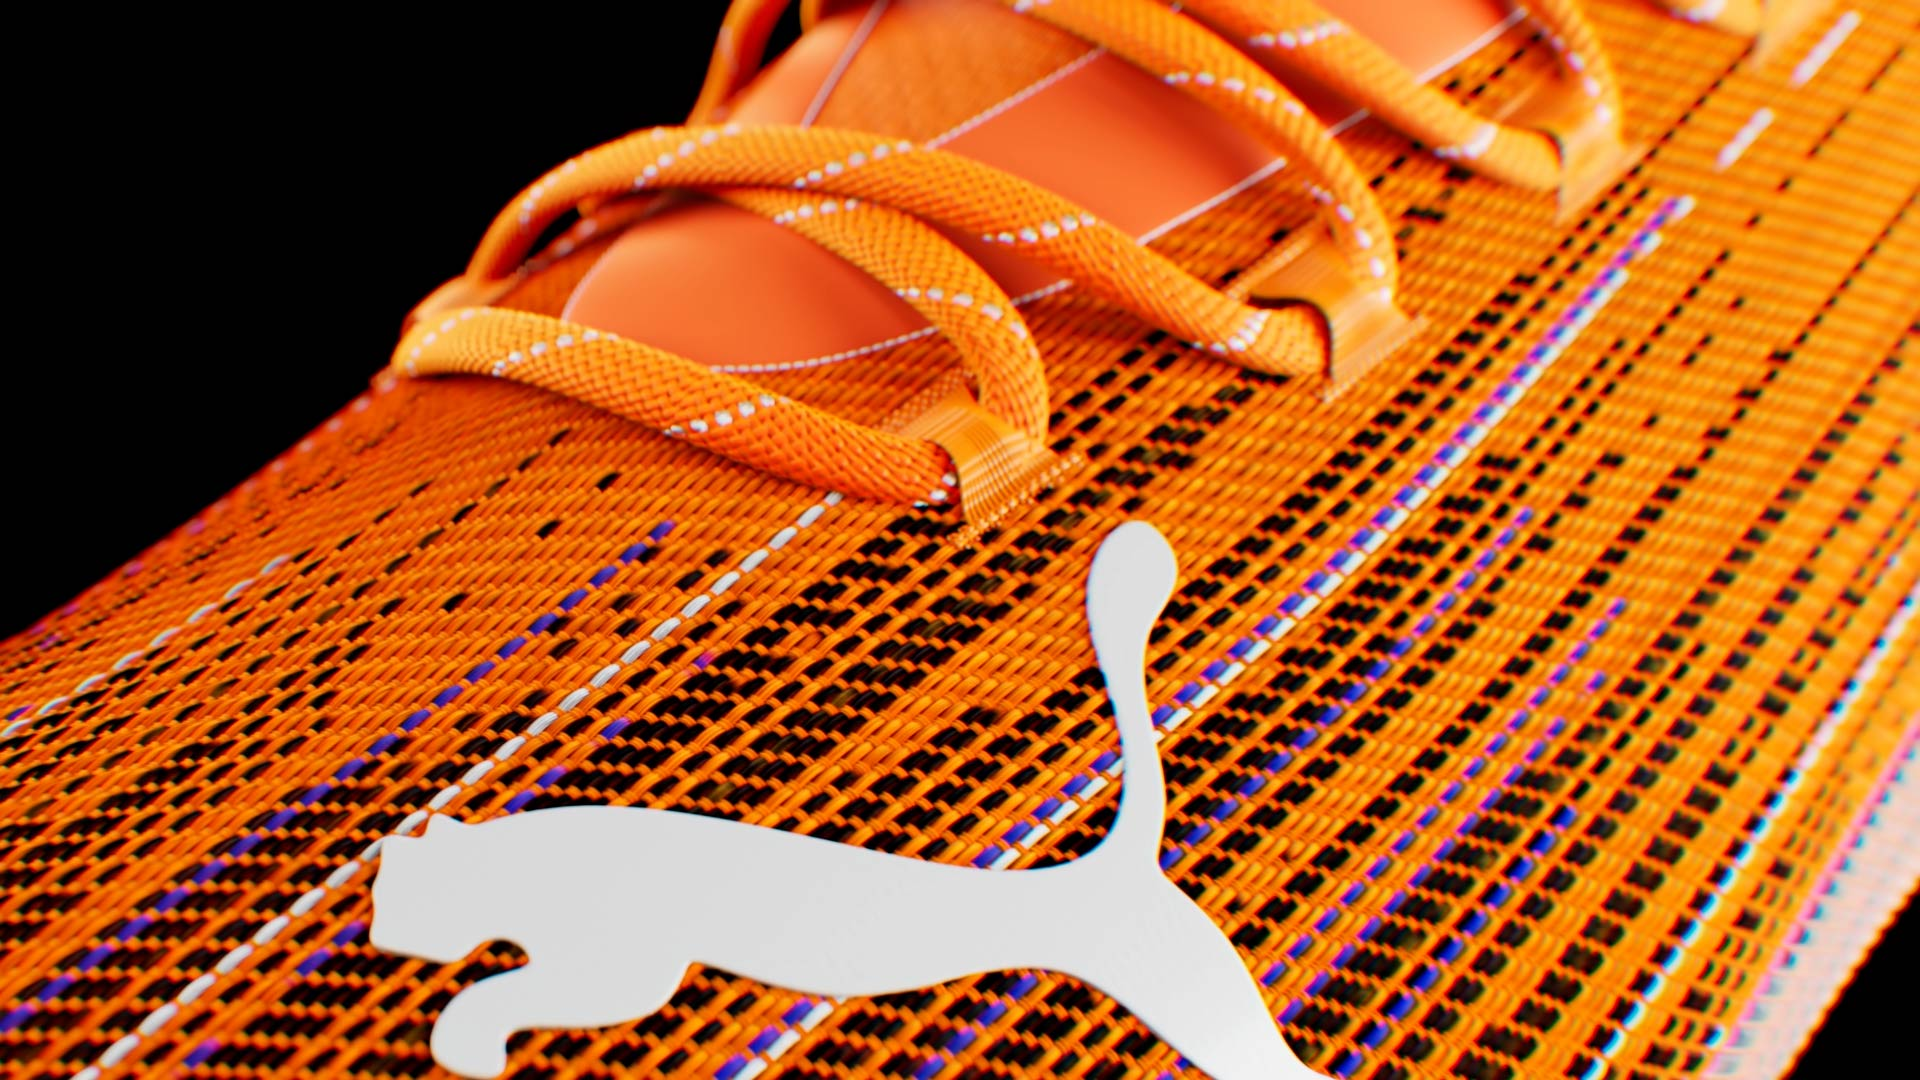 Close-up 3D render of the fabric of the Puma Ultra soccer shoe